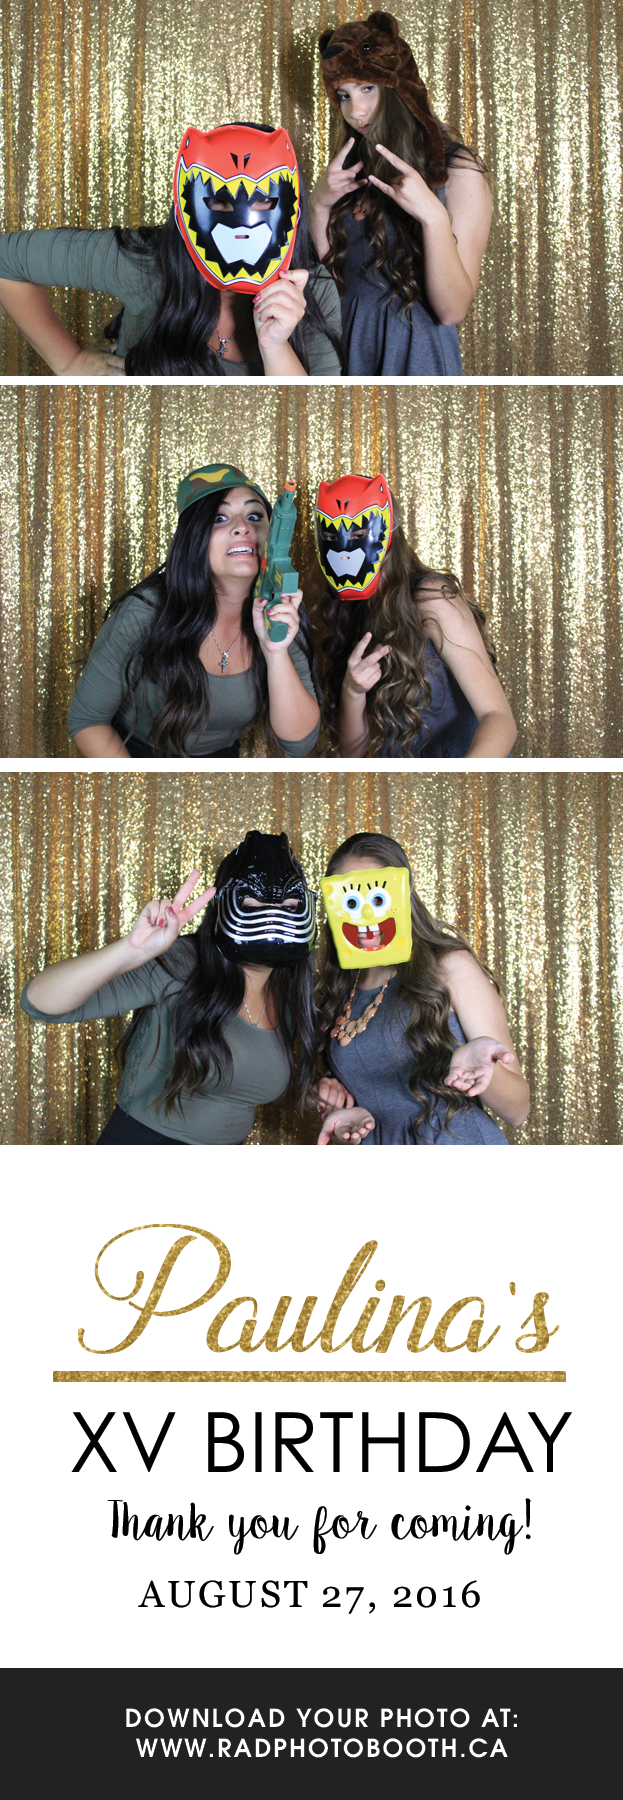 15th Birthday Photo Booth